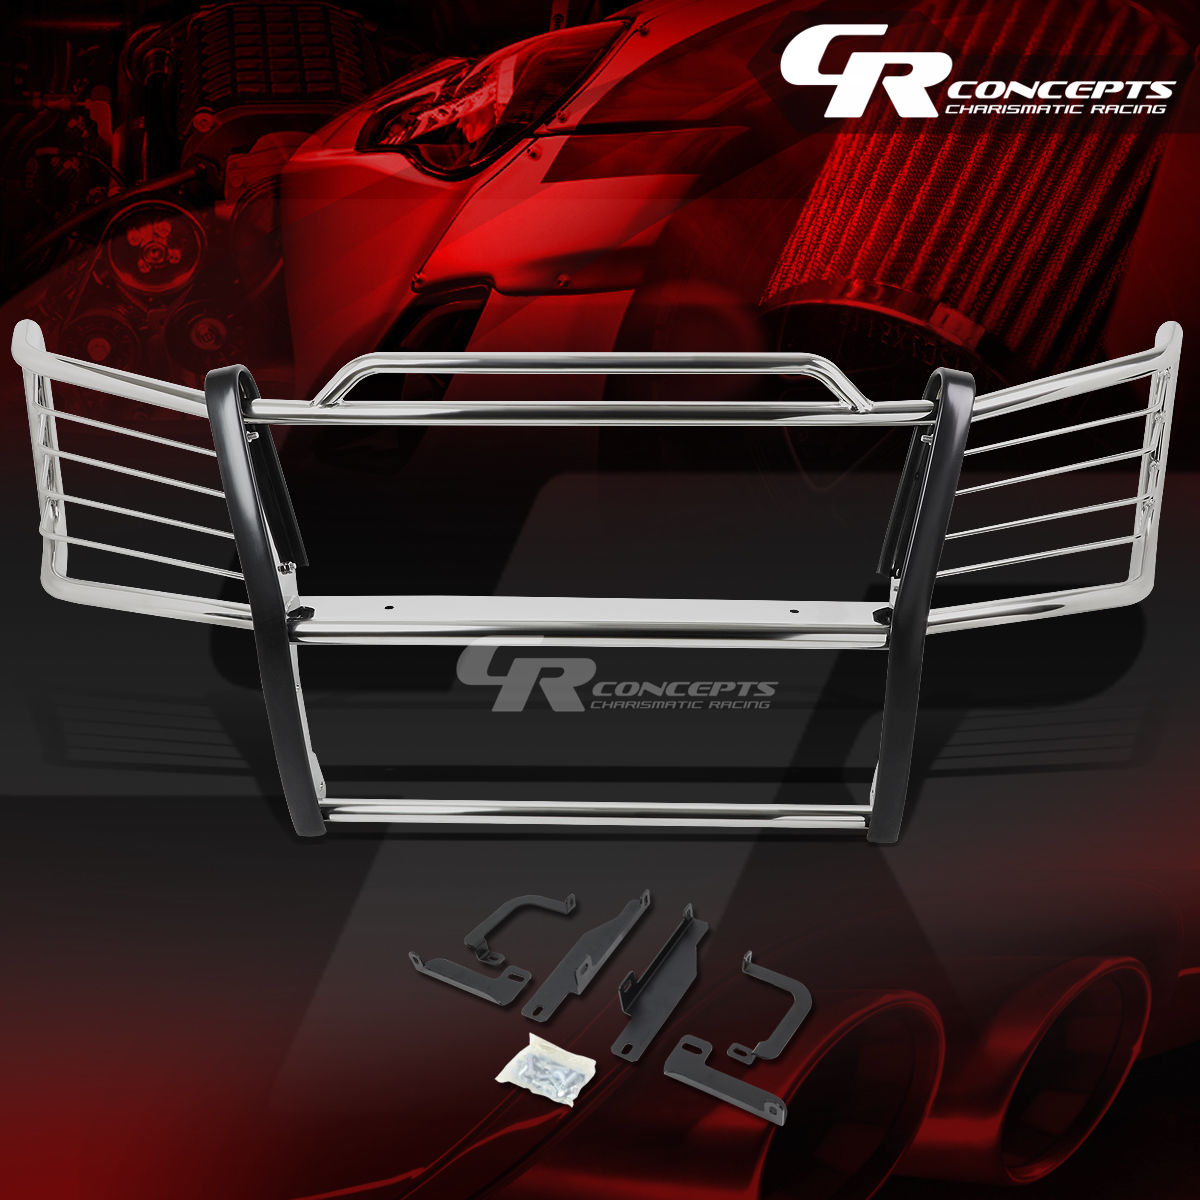 グリル クロムステンレススチールブラシグリルガード炎03-07 SILVERADO 1500HD / 2500 CHROME STAINLESS STEEL BRUSH GRILL GUARD FLAME FOR 03-07 SILVERADO 1500HD/2500